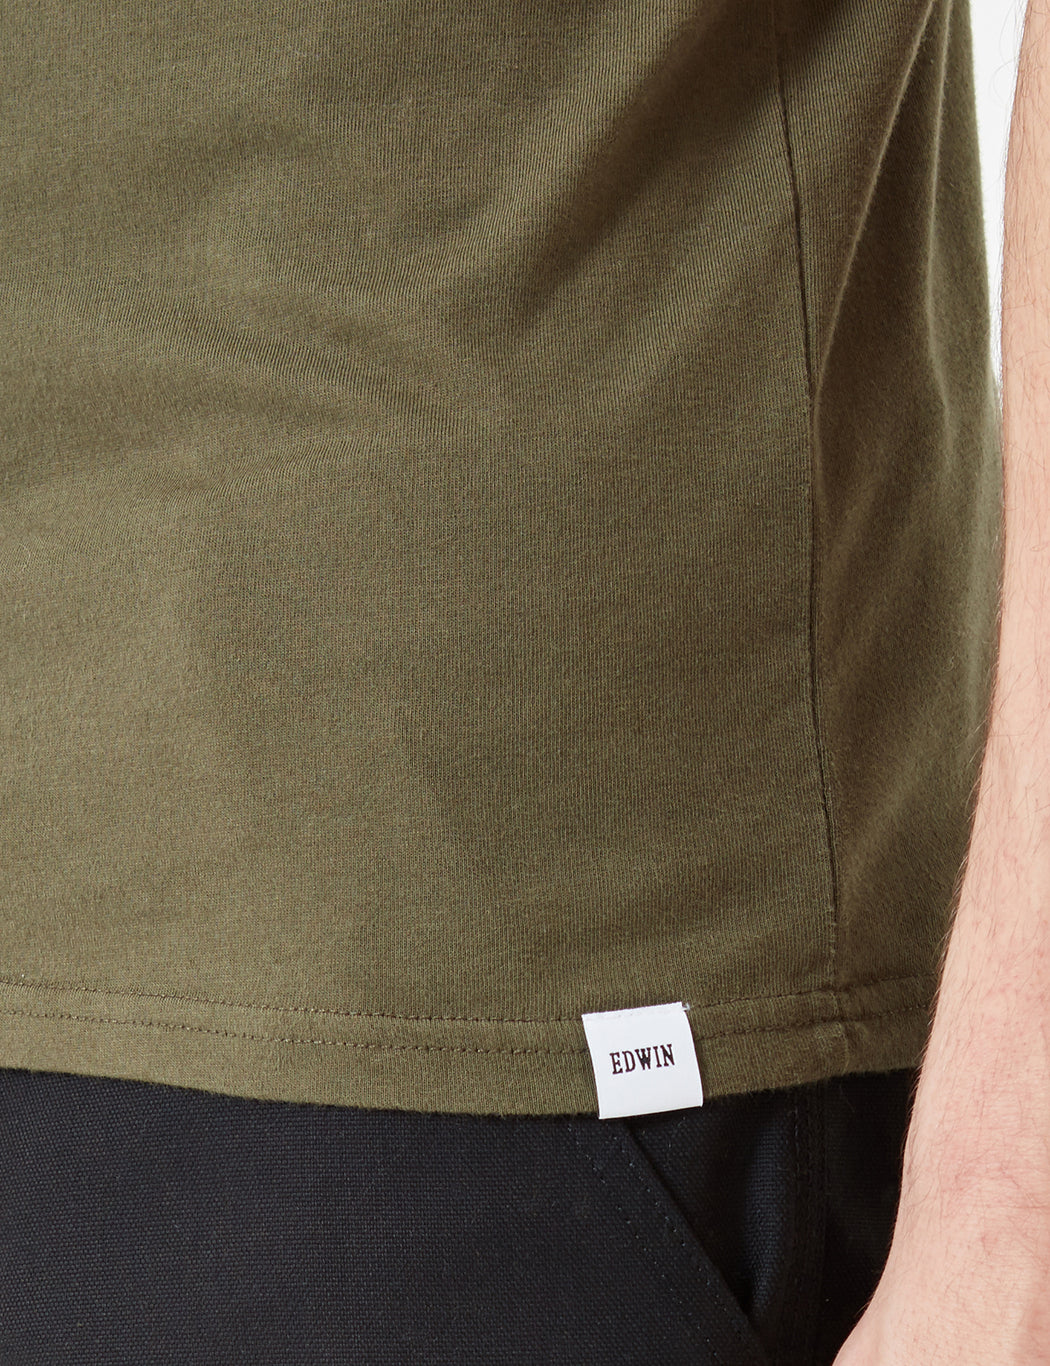 Edwin Pocket Jersey T-Shirt - Olive Green